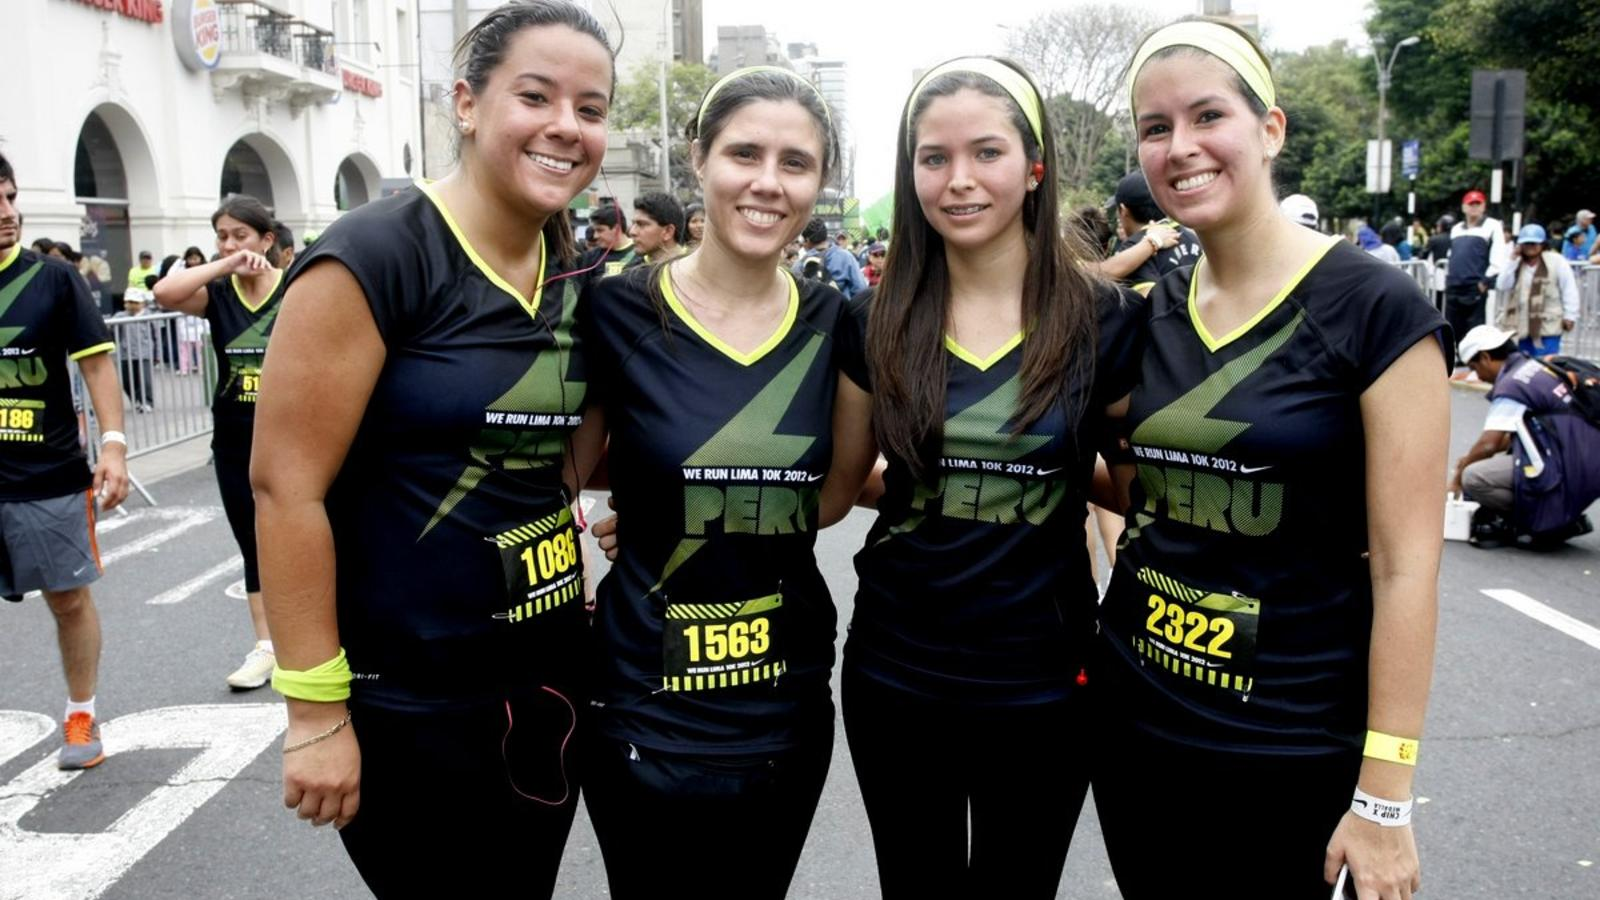 We_Run_Lima_--_women_runners